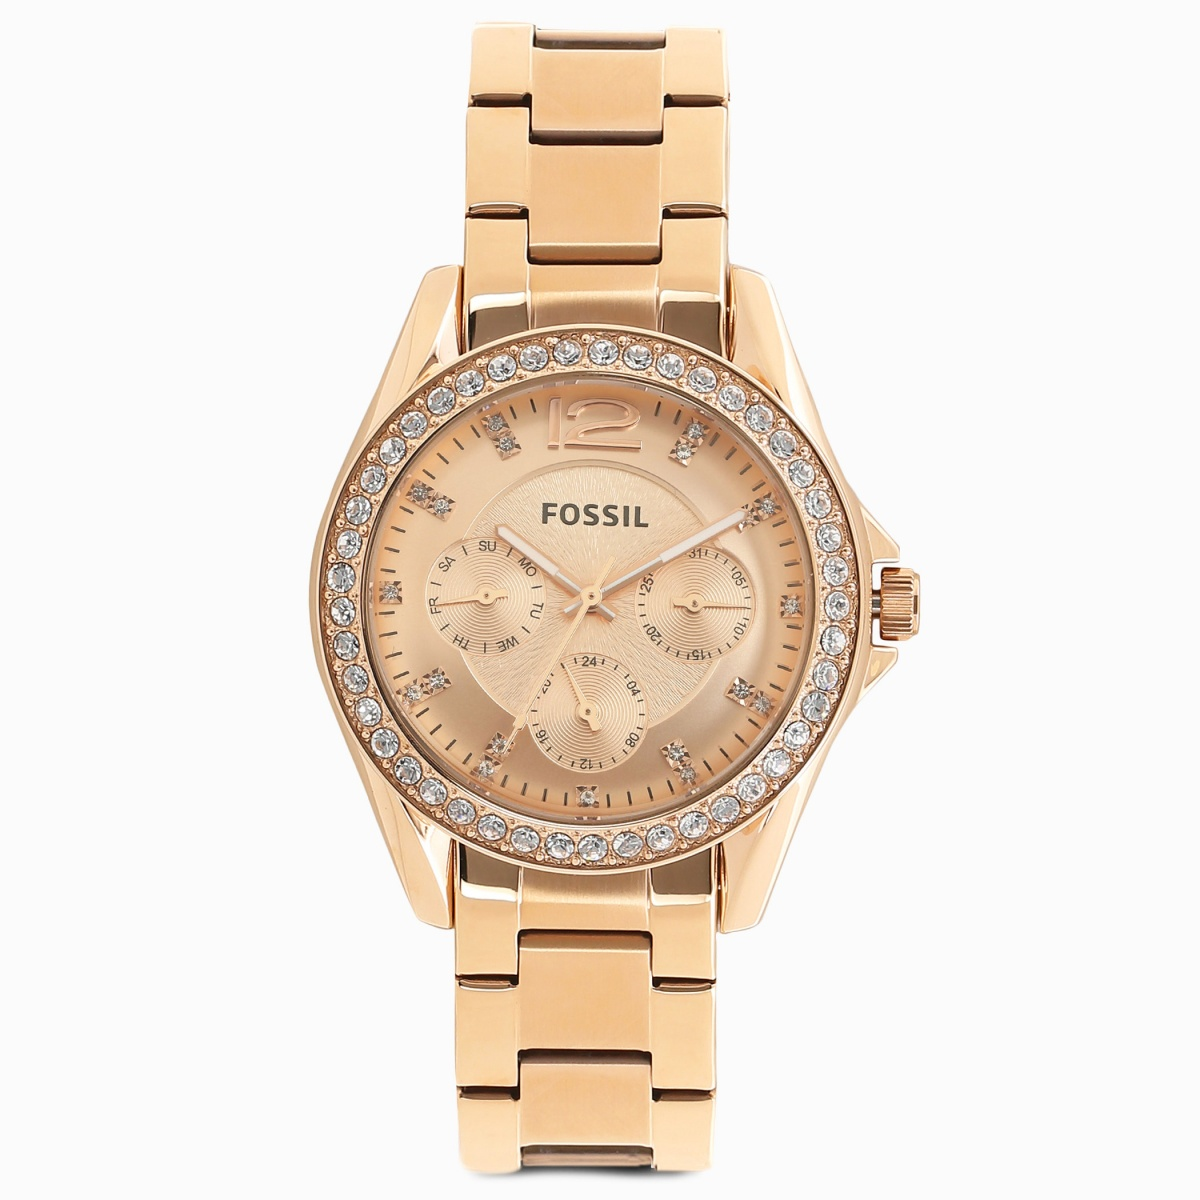 FOSSIL Womens Analog Watch - ES2811I